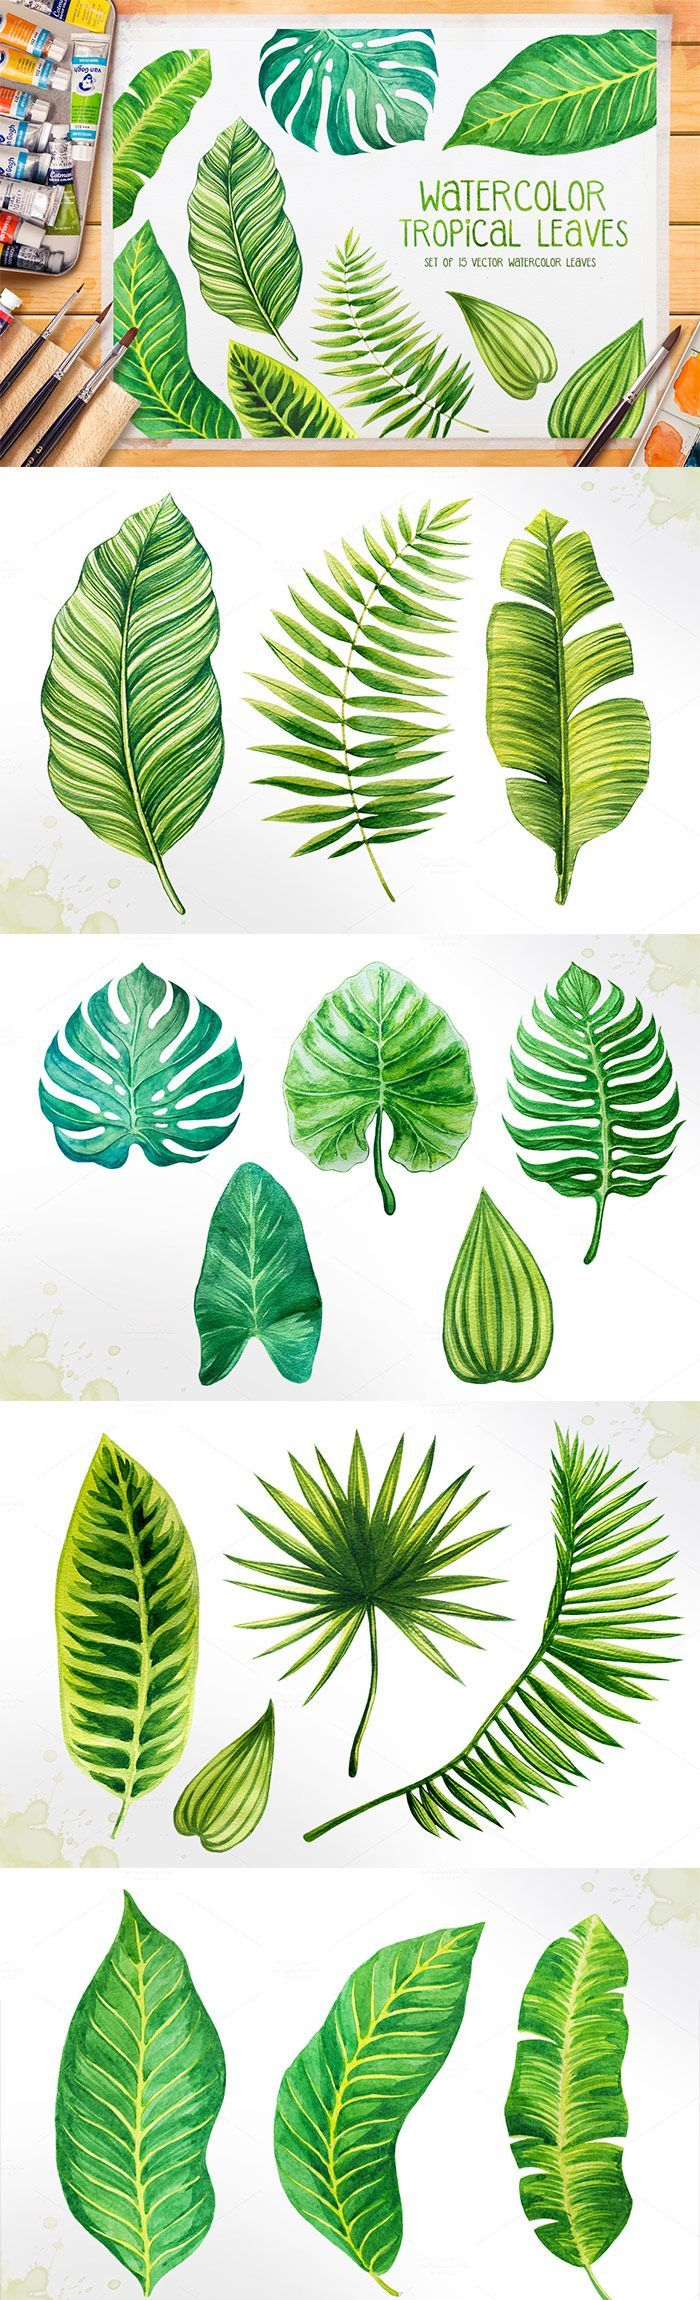 Pin By Ilkasblog On Craft Community Board Leaf Illustration